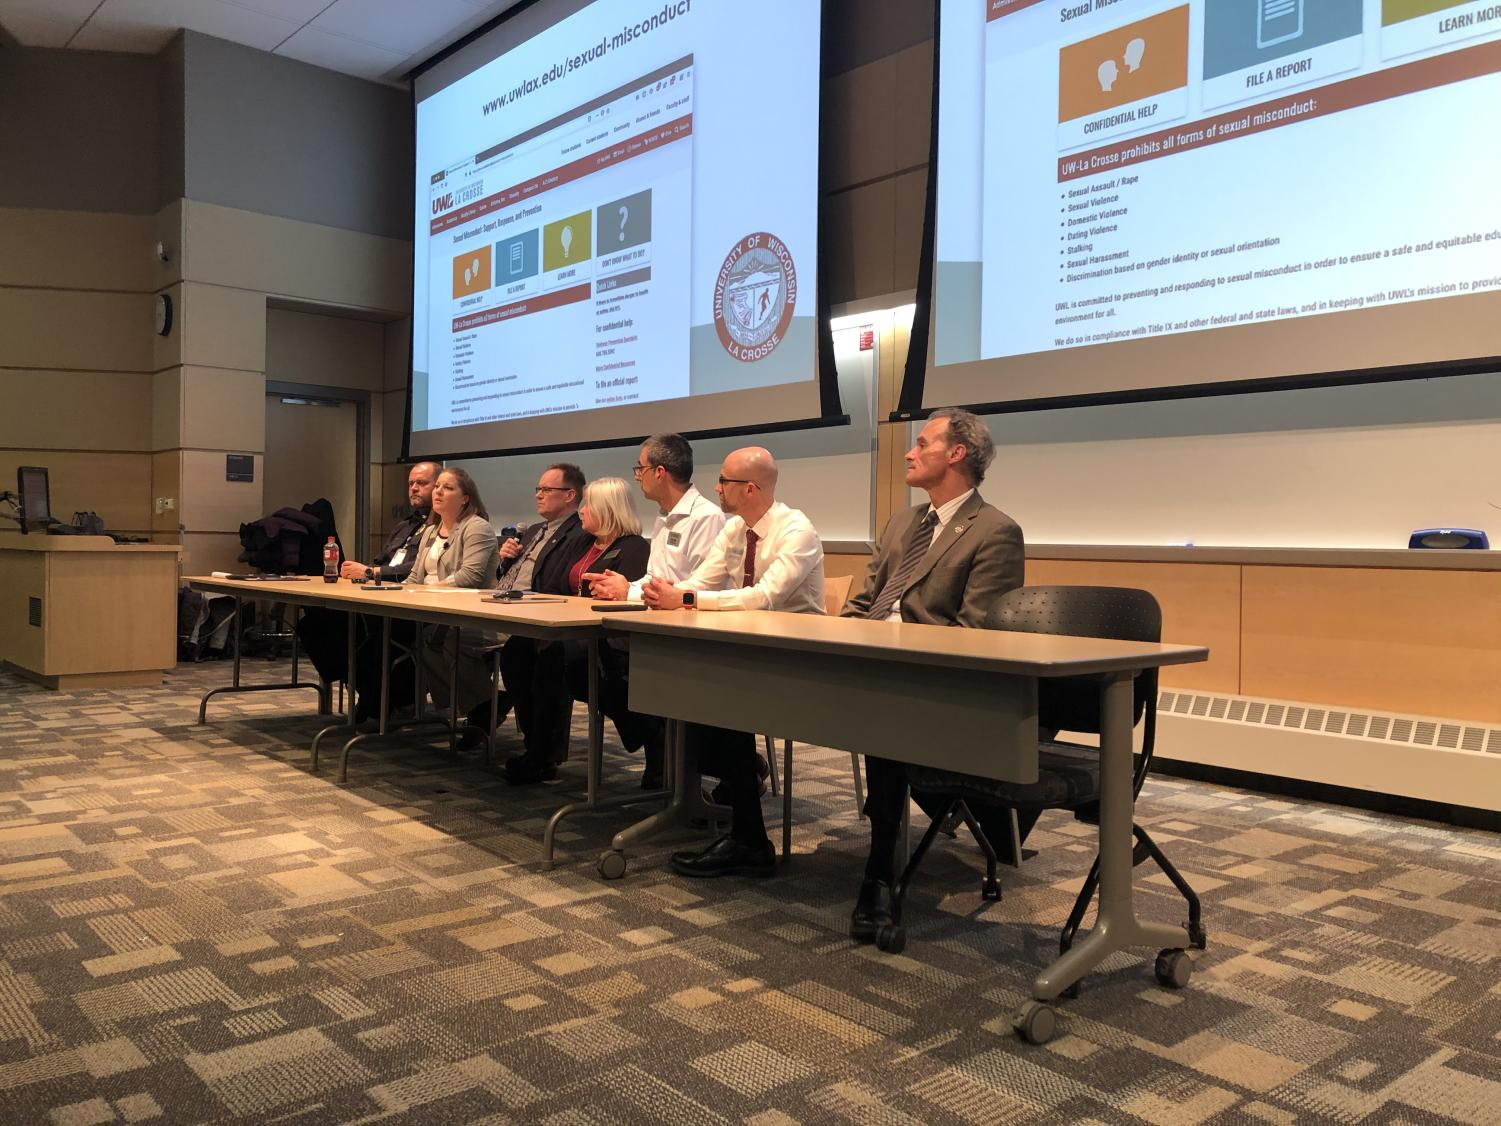 Chancellor Joe Gow and Title IX team at the open forum. Photo taken by  Sam Stroozas.